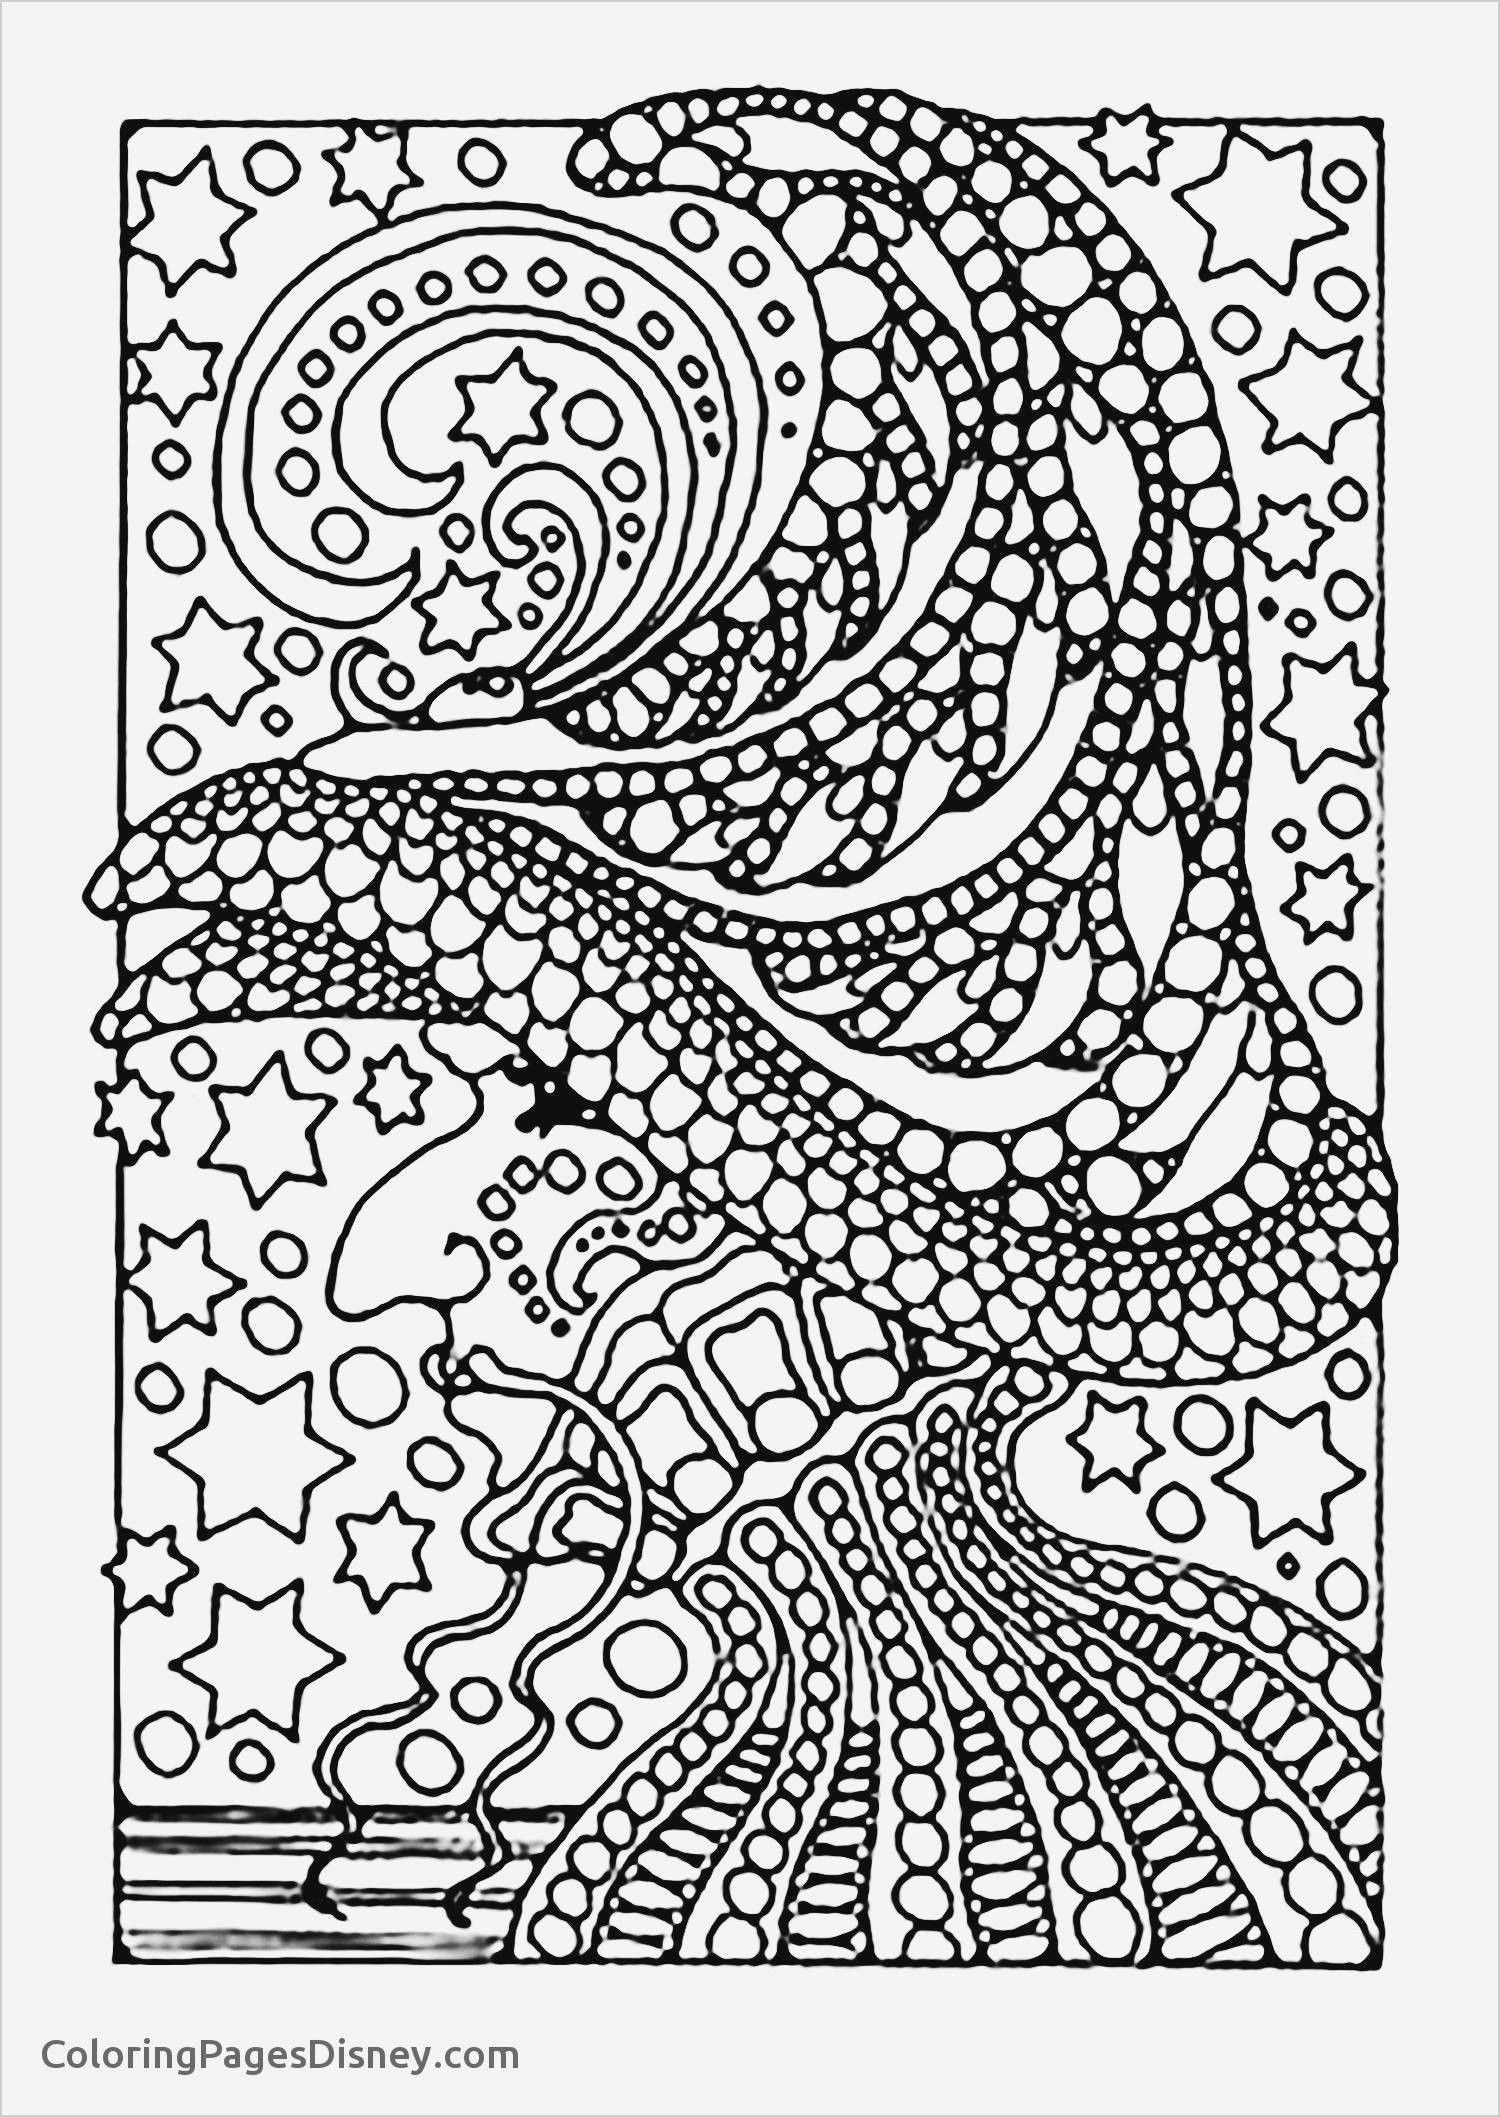 Coloring Book Album Cover Awesome Inspirational Coloring Book Designs Witch Coloring Pages Coloring Pages Inspirational Heart Coloring Pages